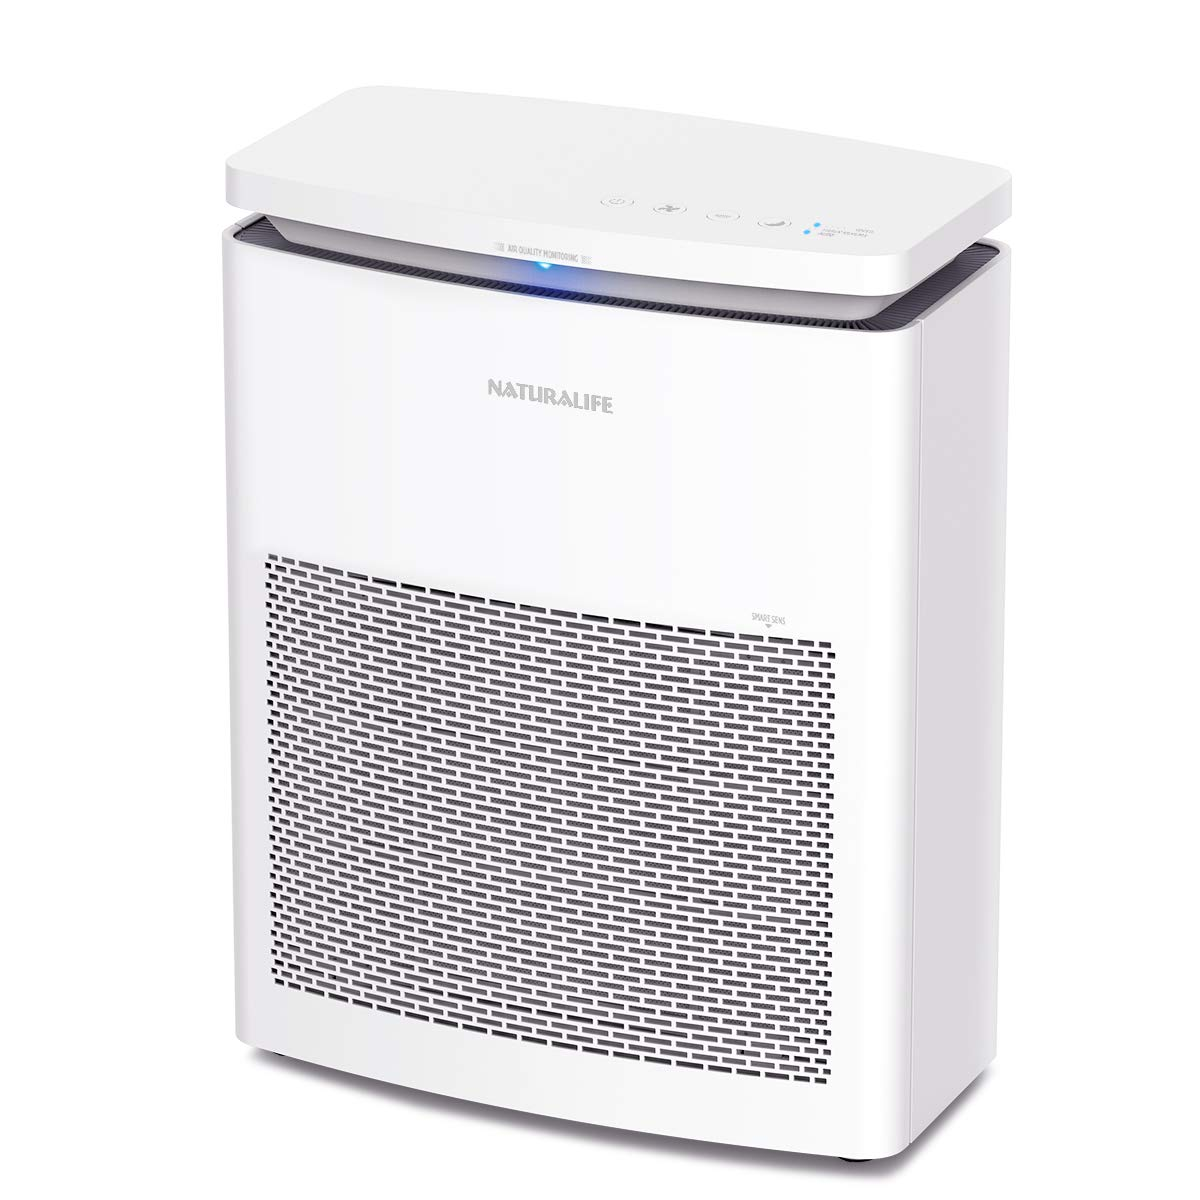 NATURALIFE Air Purifier 3-in 1 Air Cleaning System with Washable Pre-filter, HEPA & Active Carbon Filters for Large Rooms up to 25-35m² (large)